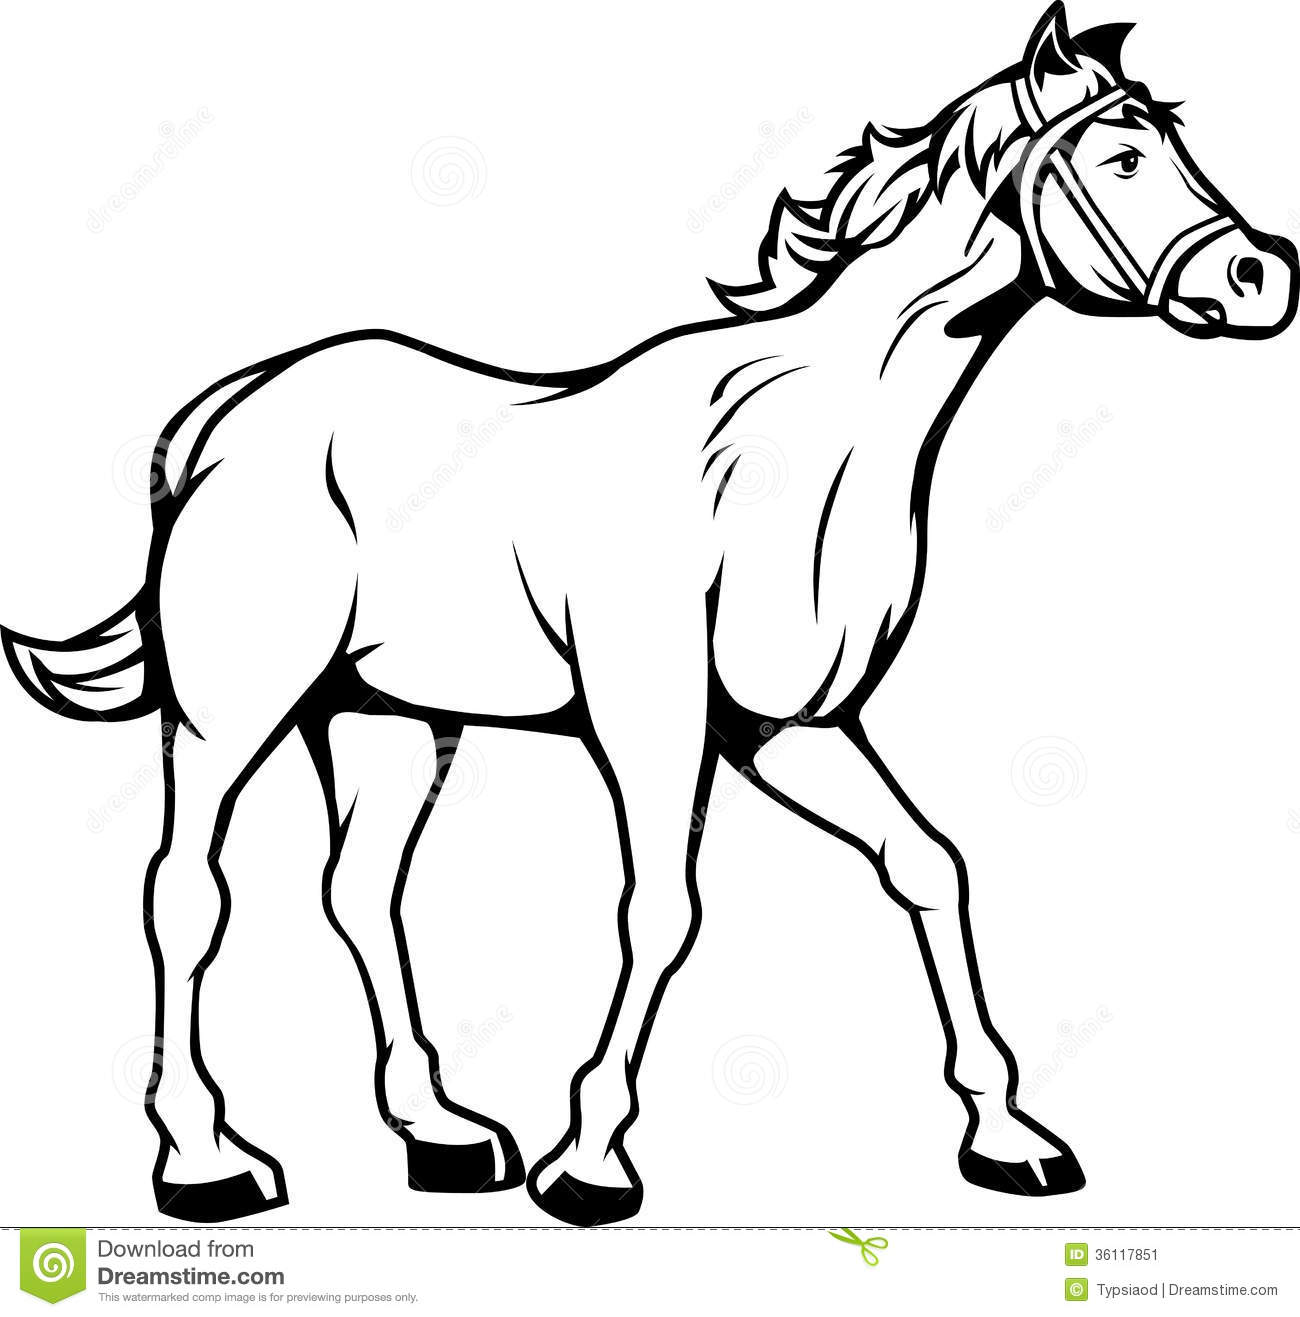 Foal clipart Drawings Drawings Black White and